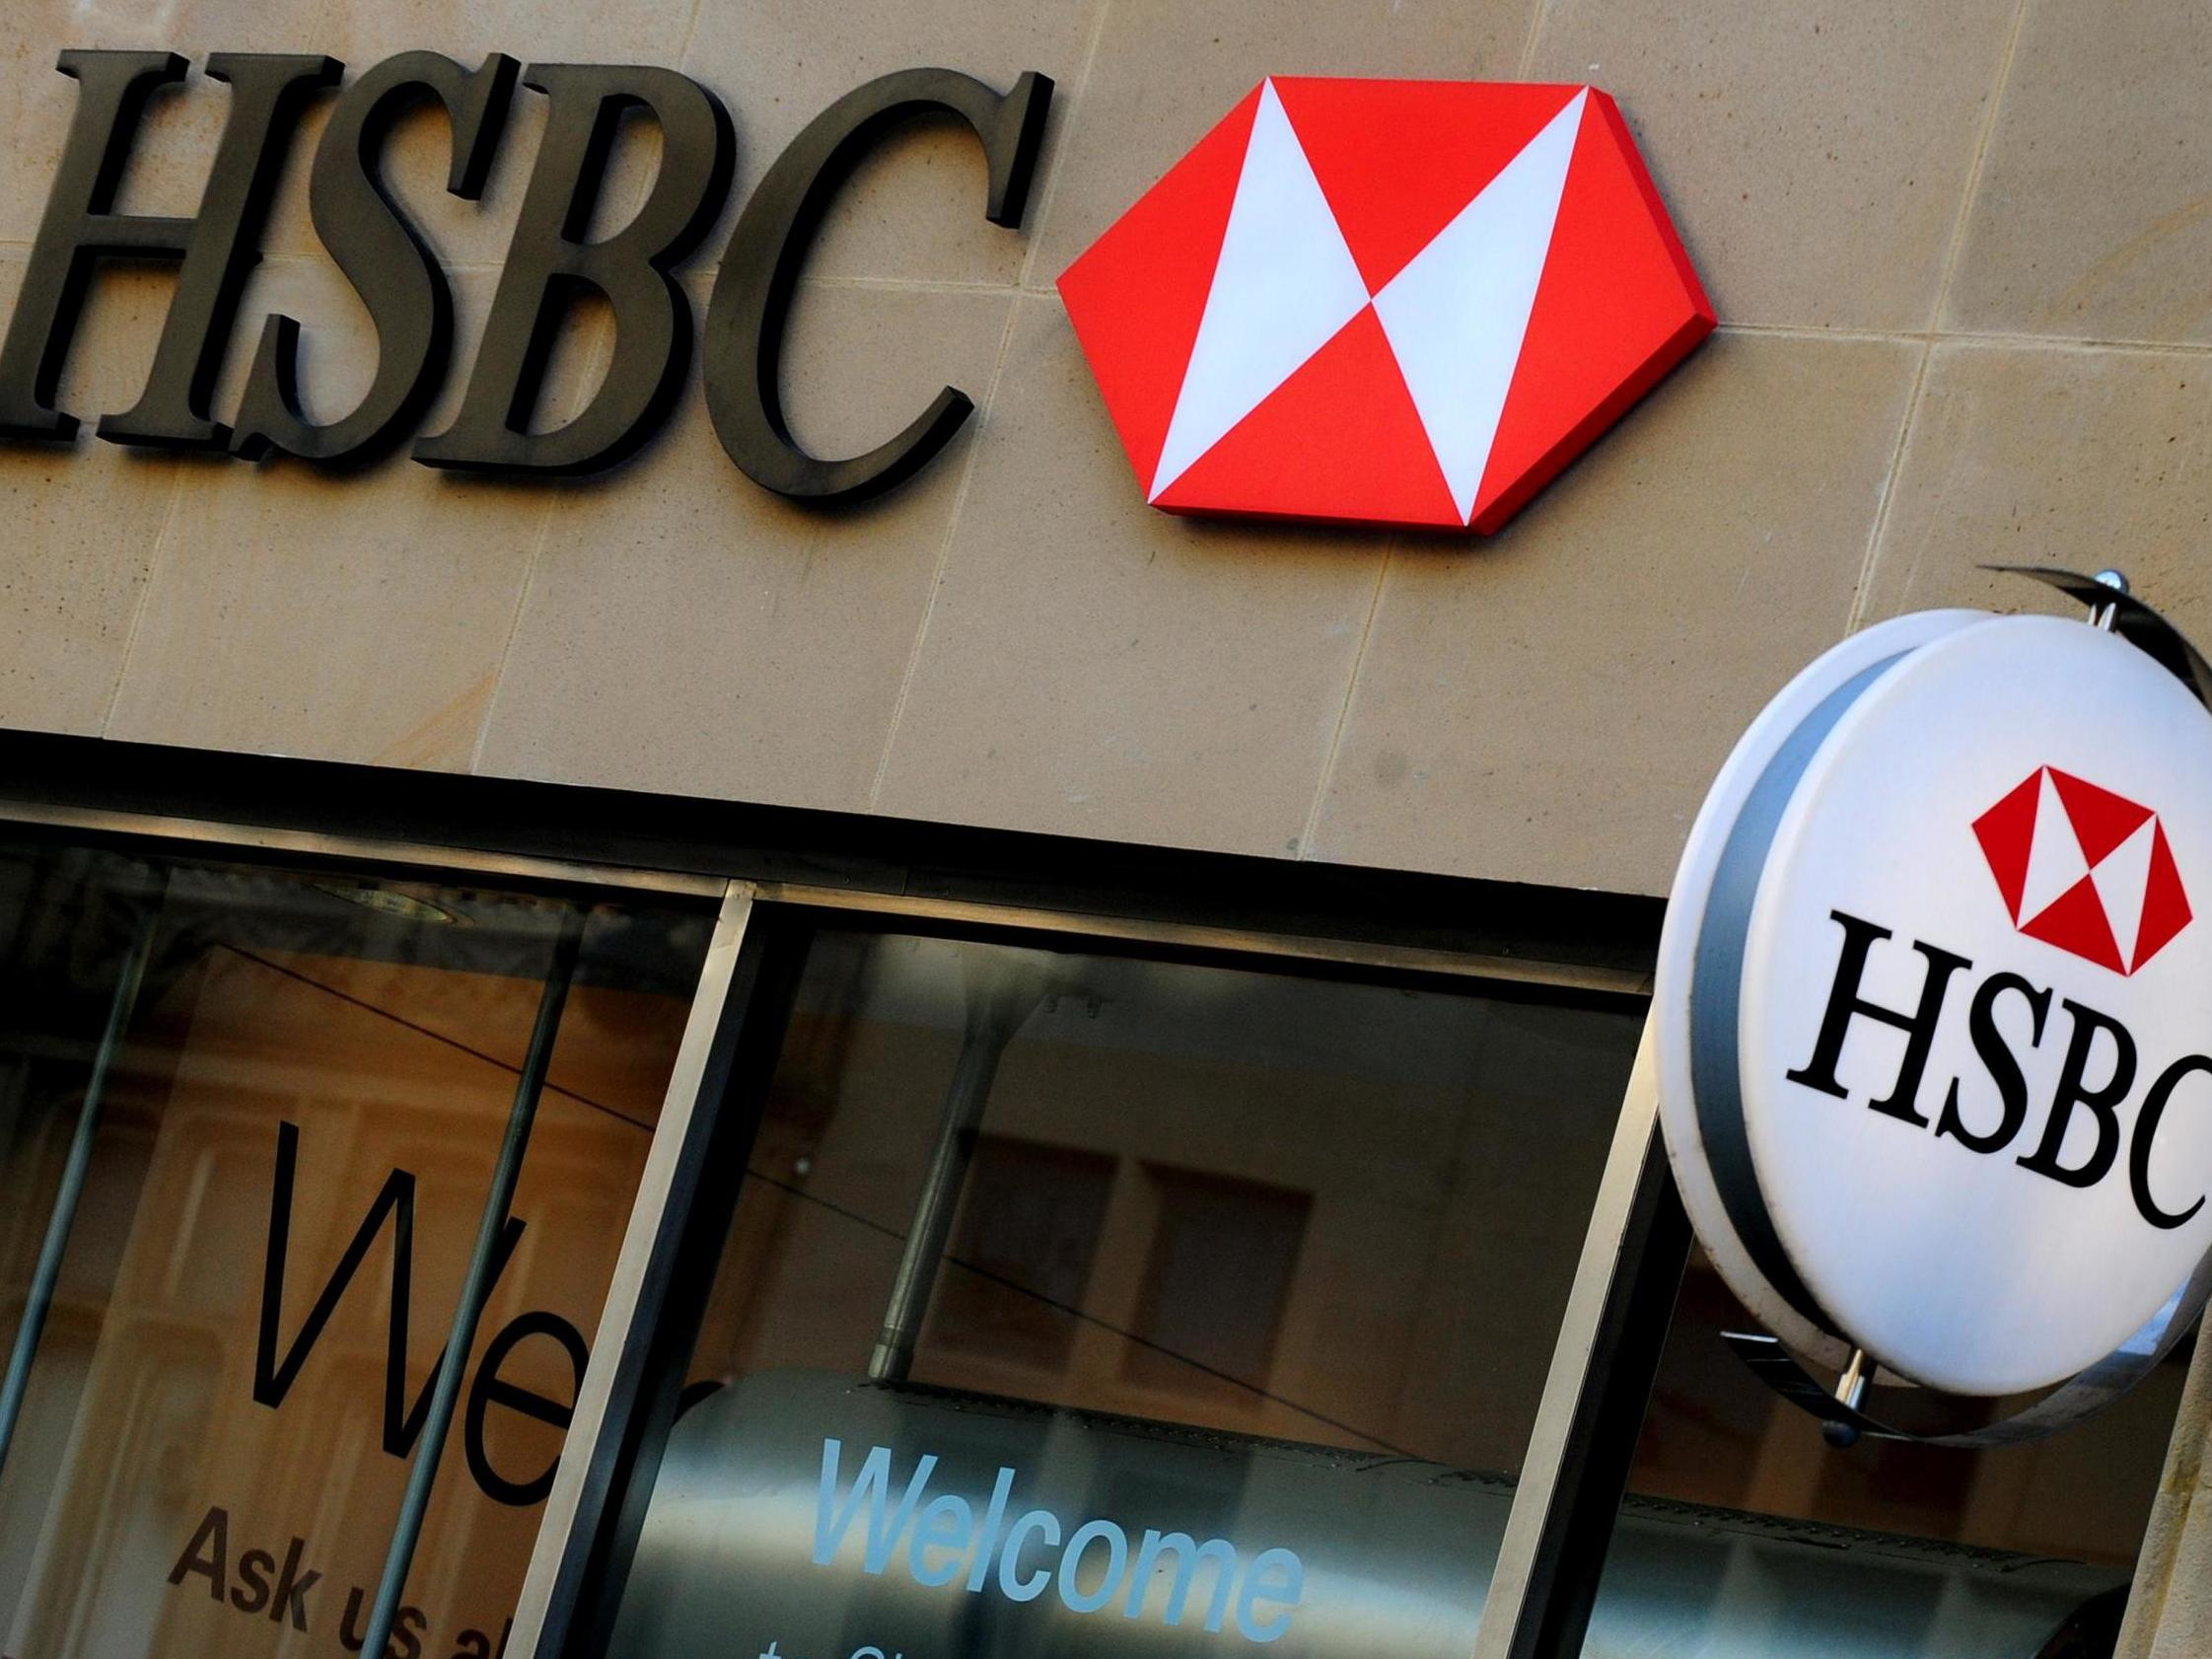 HSBC - latest news, breaking stories and comment - The Independent